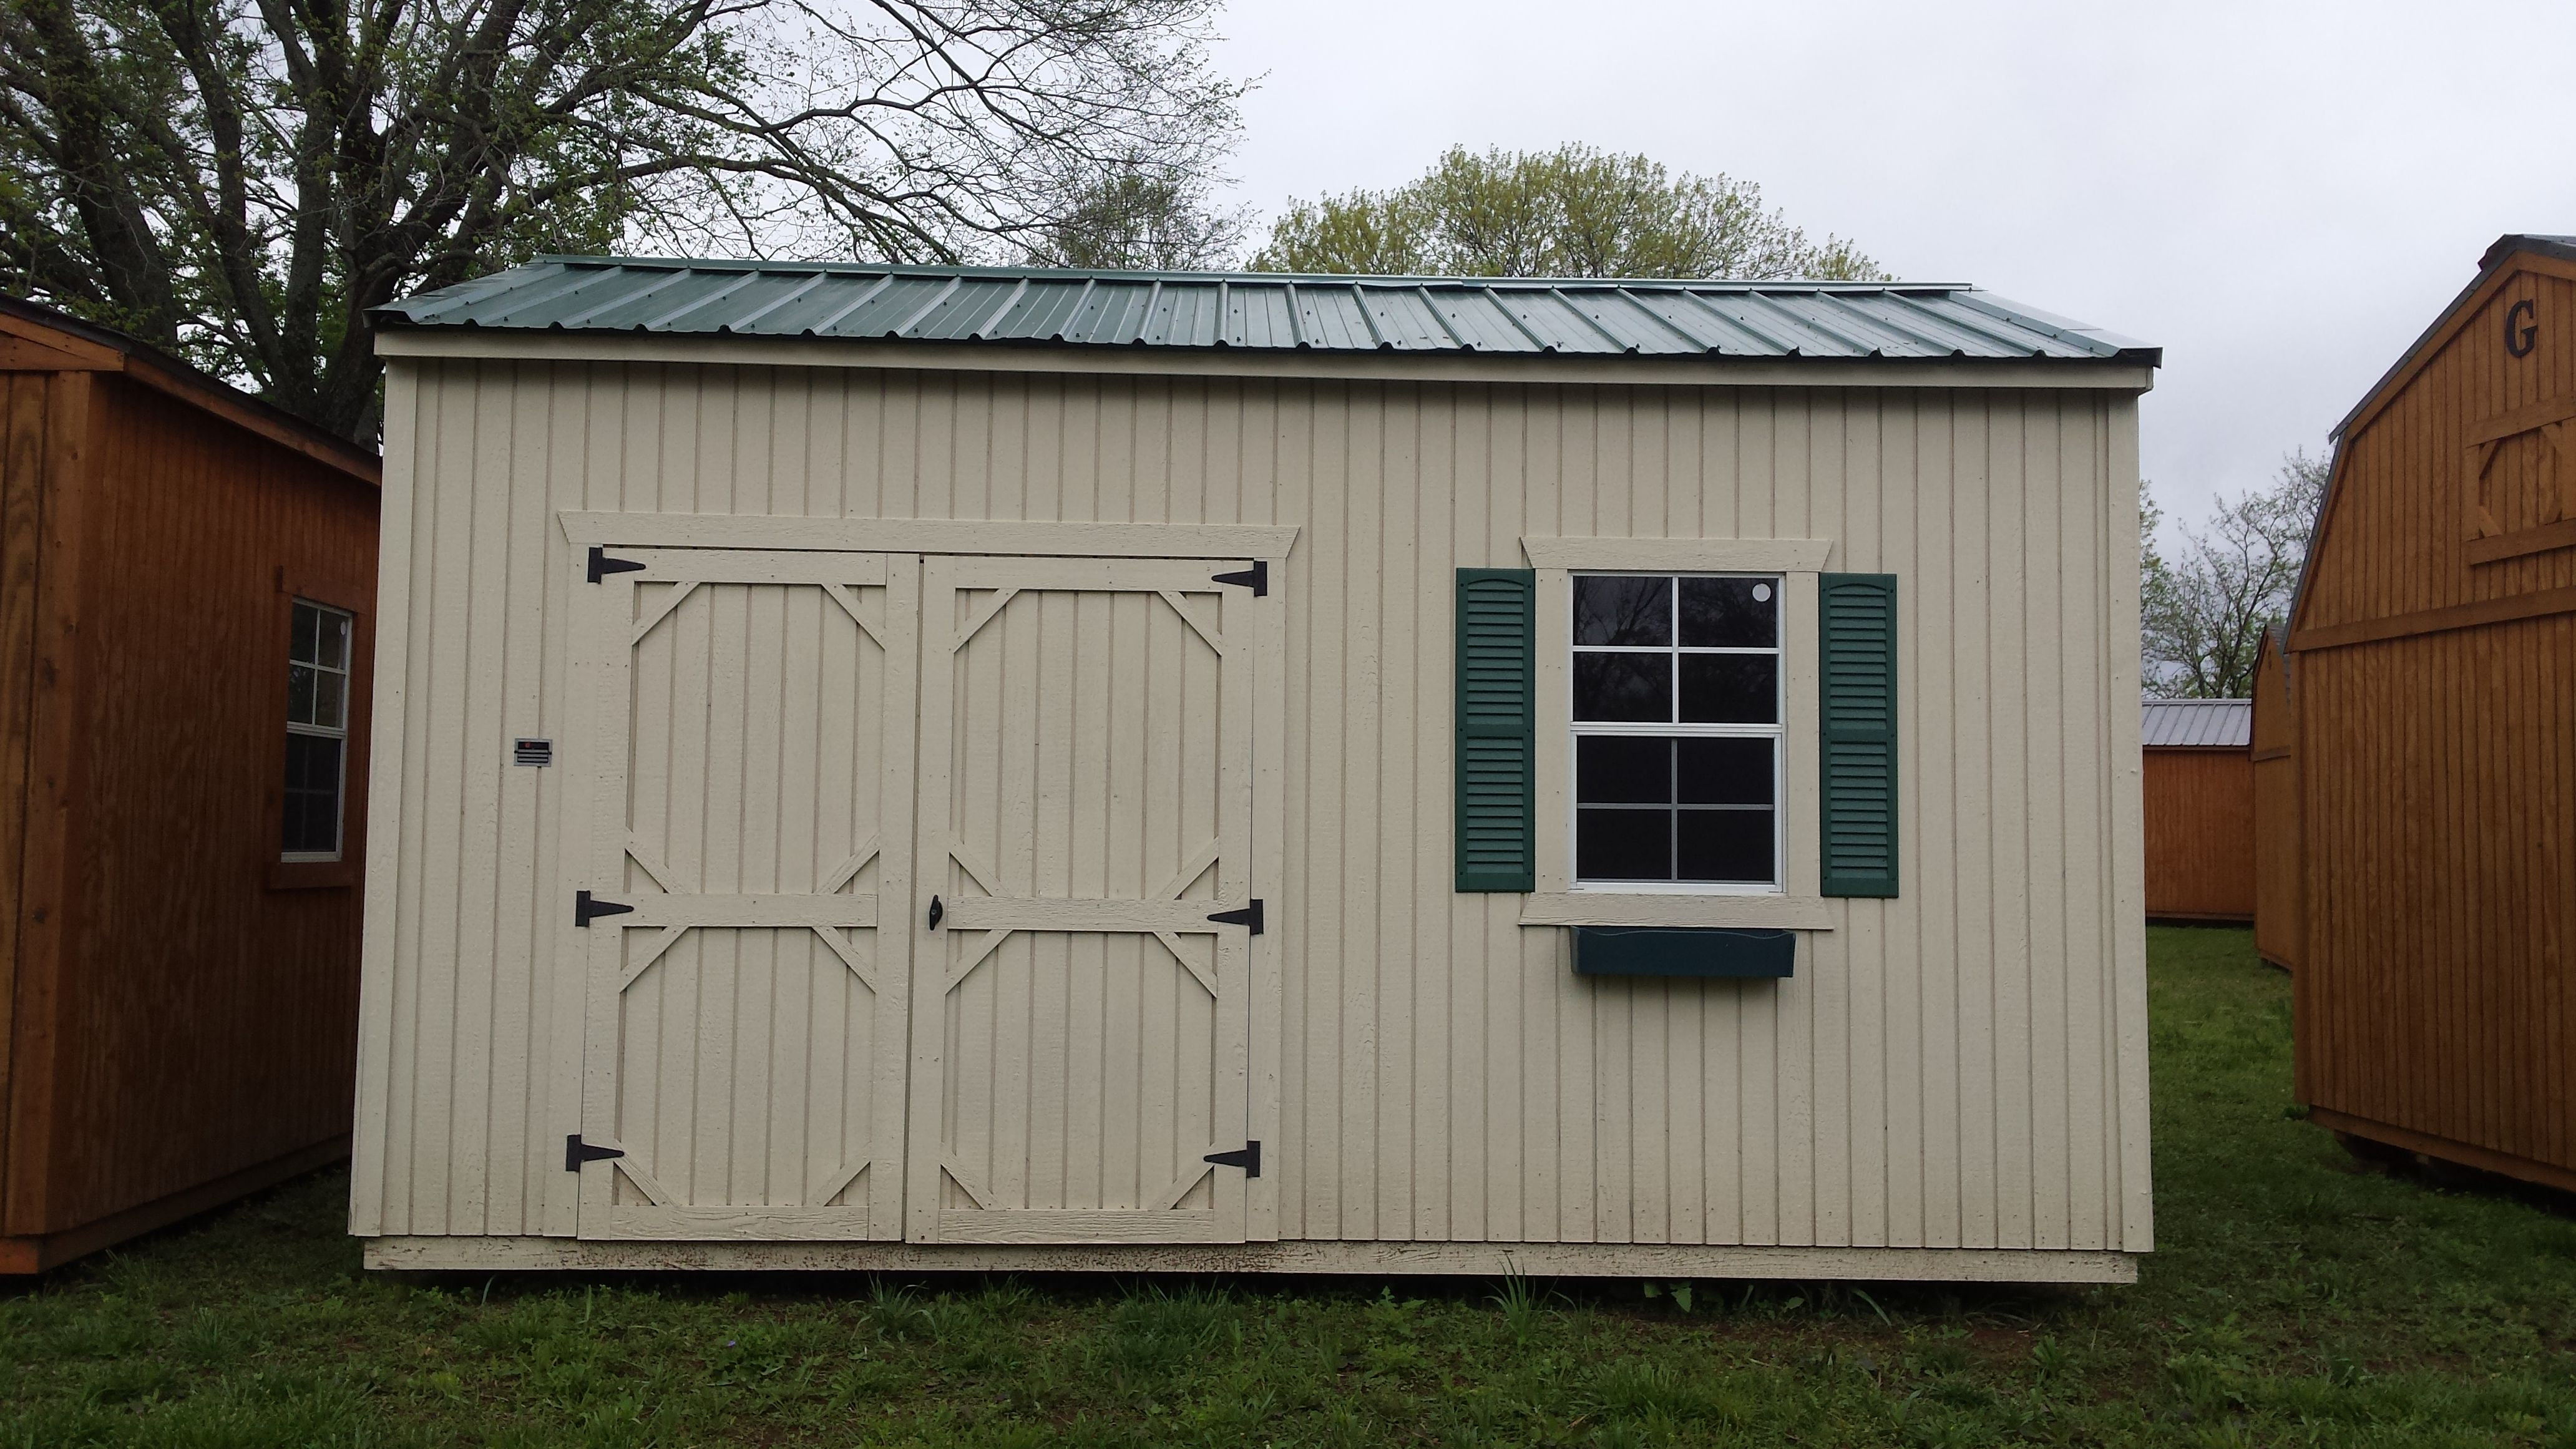 Our Garden Shed In Navajo White With Green Shutters And A Green Flower Box Awesome Colors See Your Local Representativ Portable Buildings Green Shutters Shed